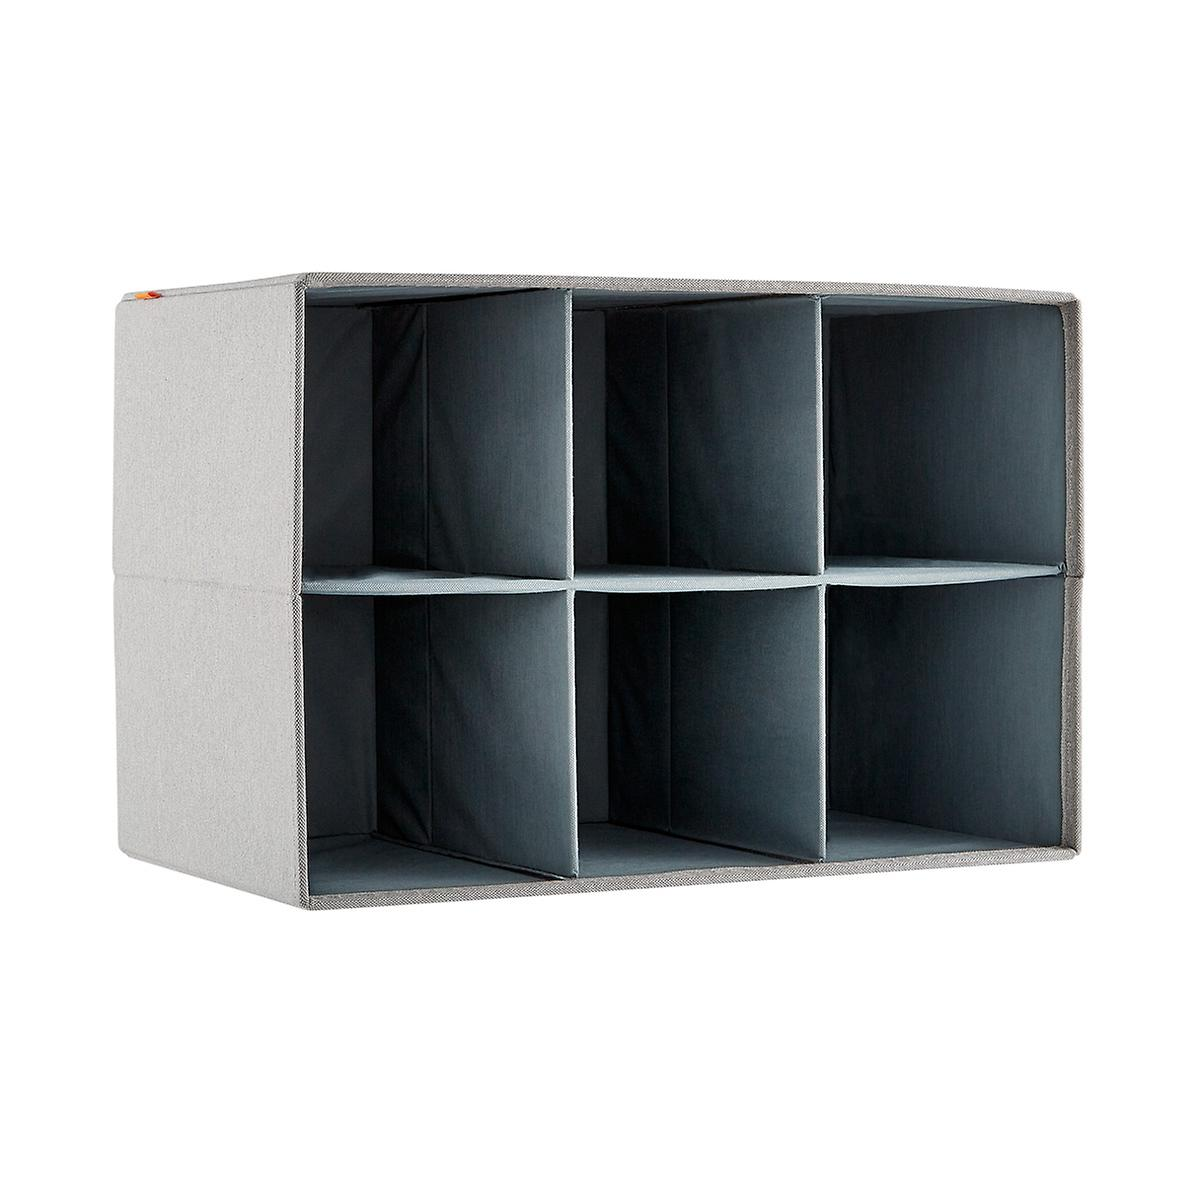 Poppin 3x2 Fabric Storage Cubby